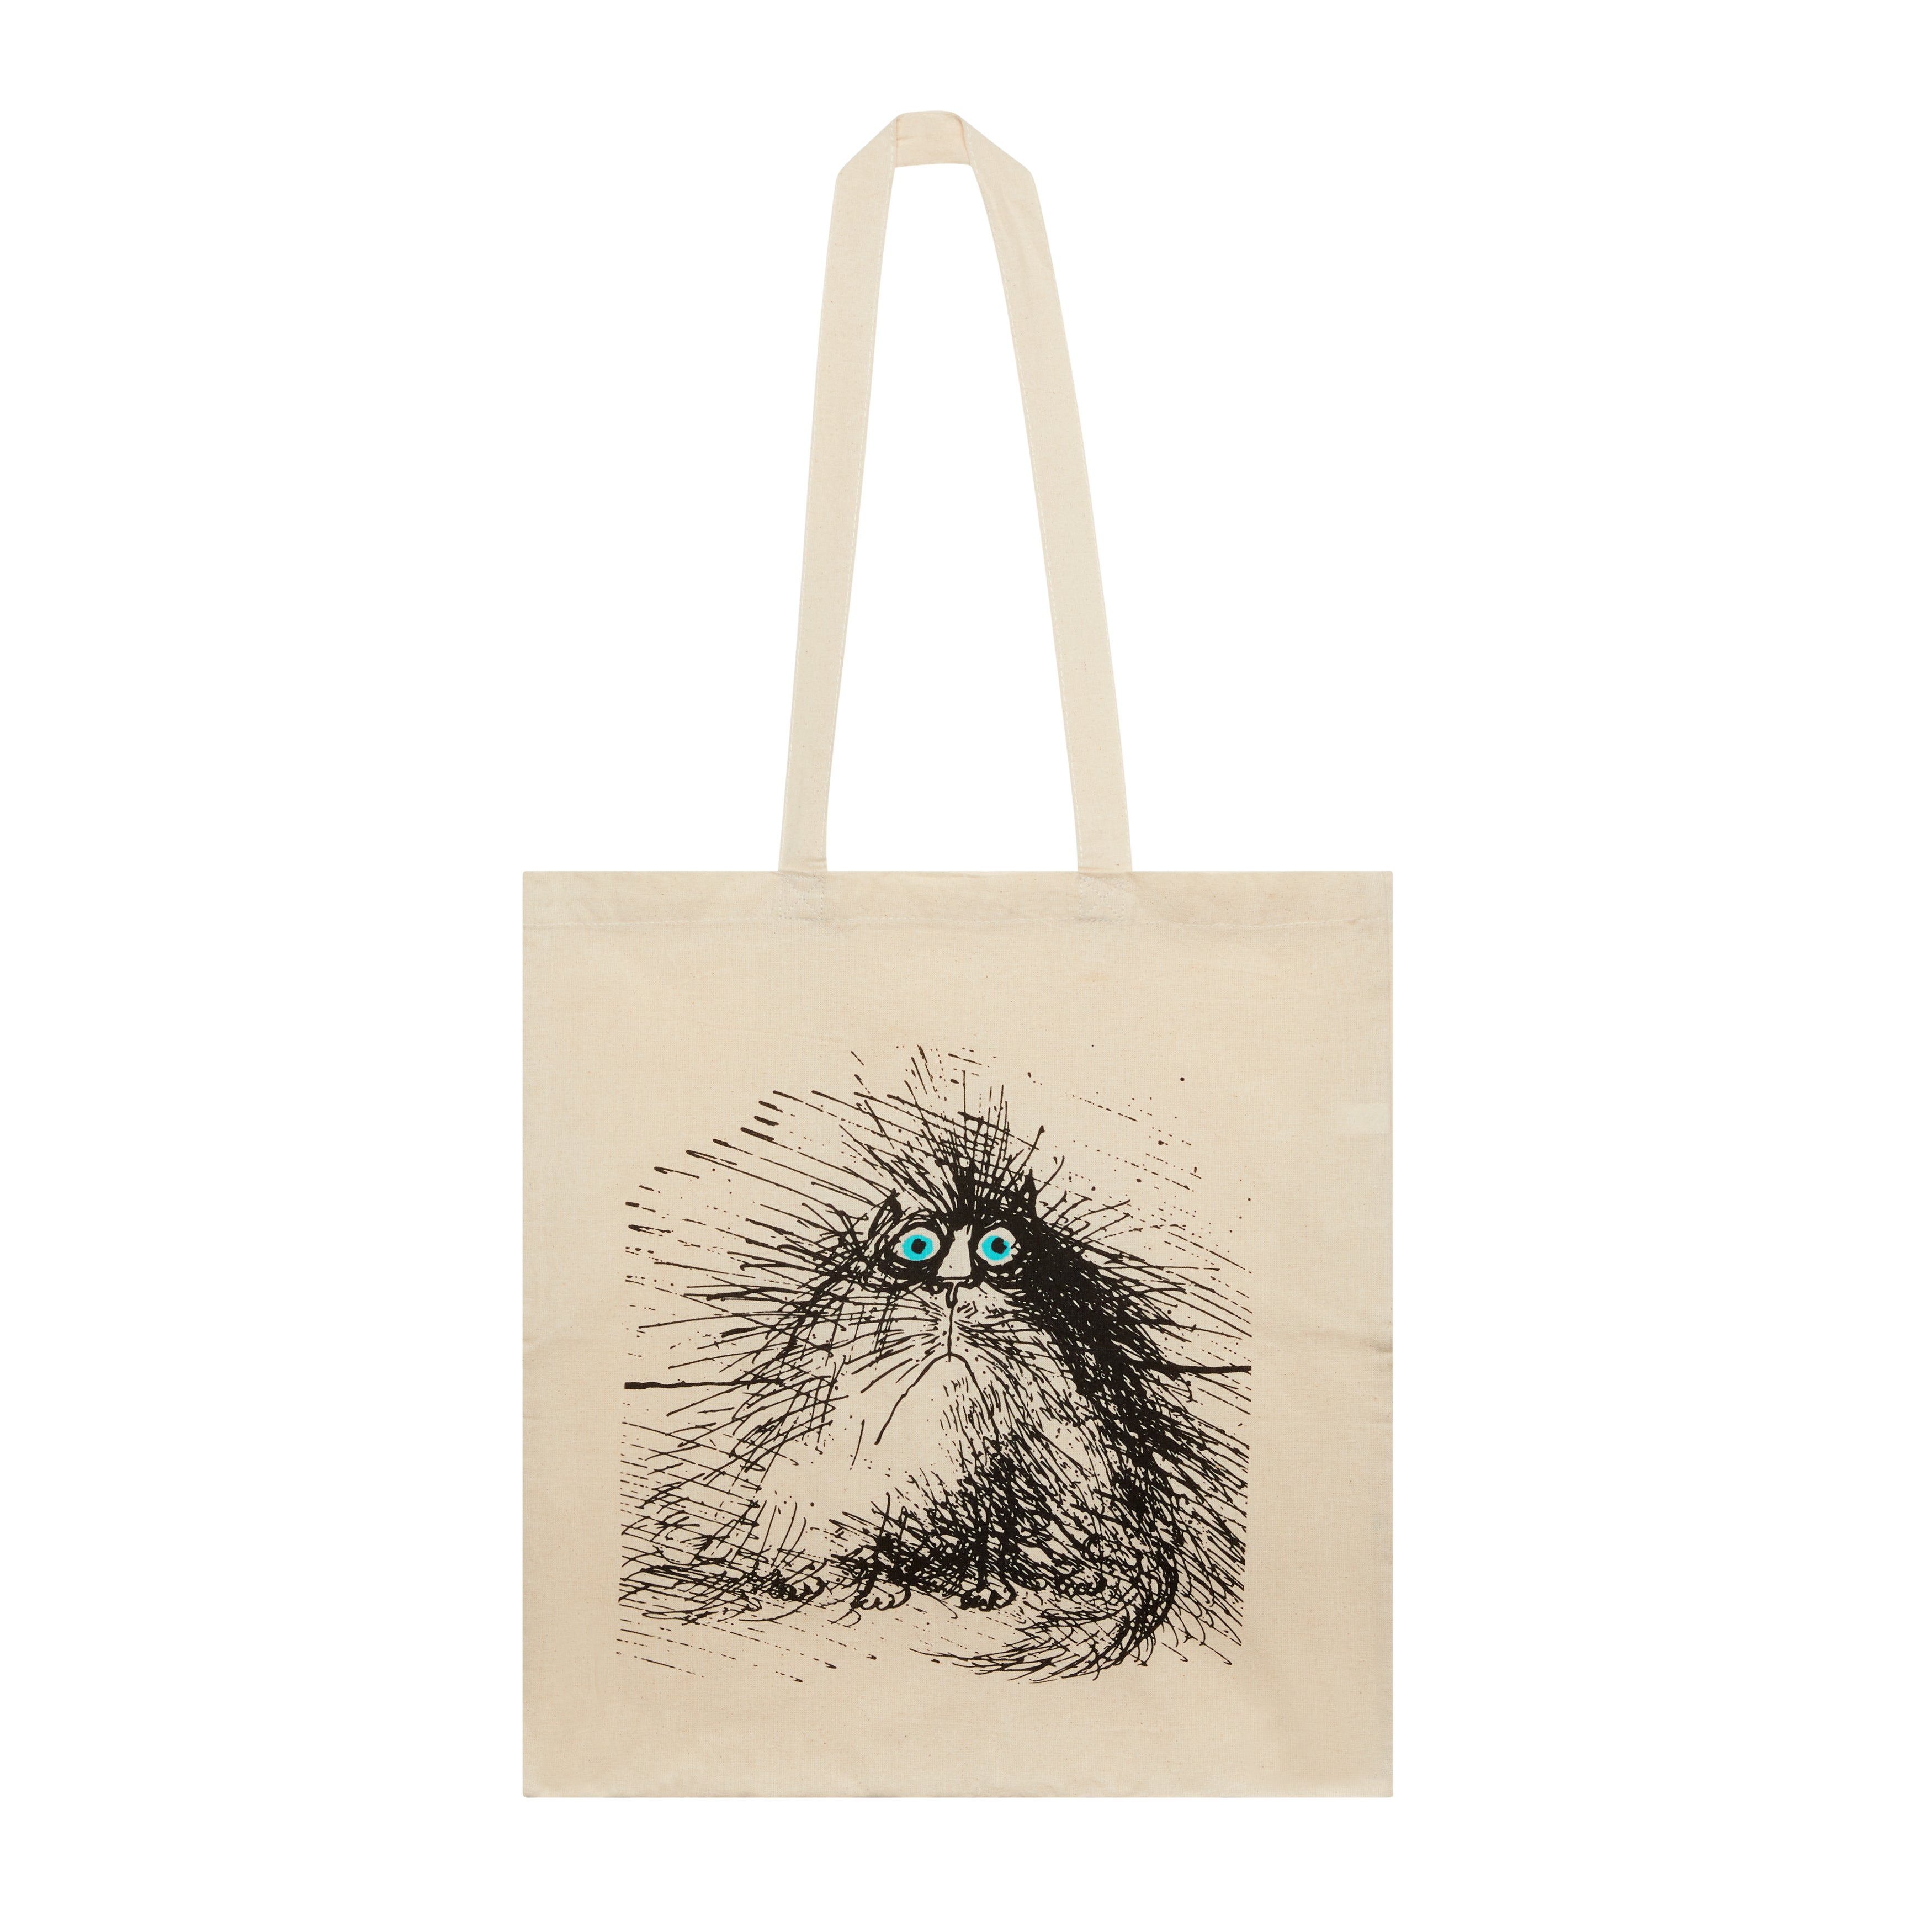 Featured image for the project: Tote Bag, Grumpy Cat, Ronald Searle